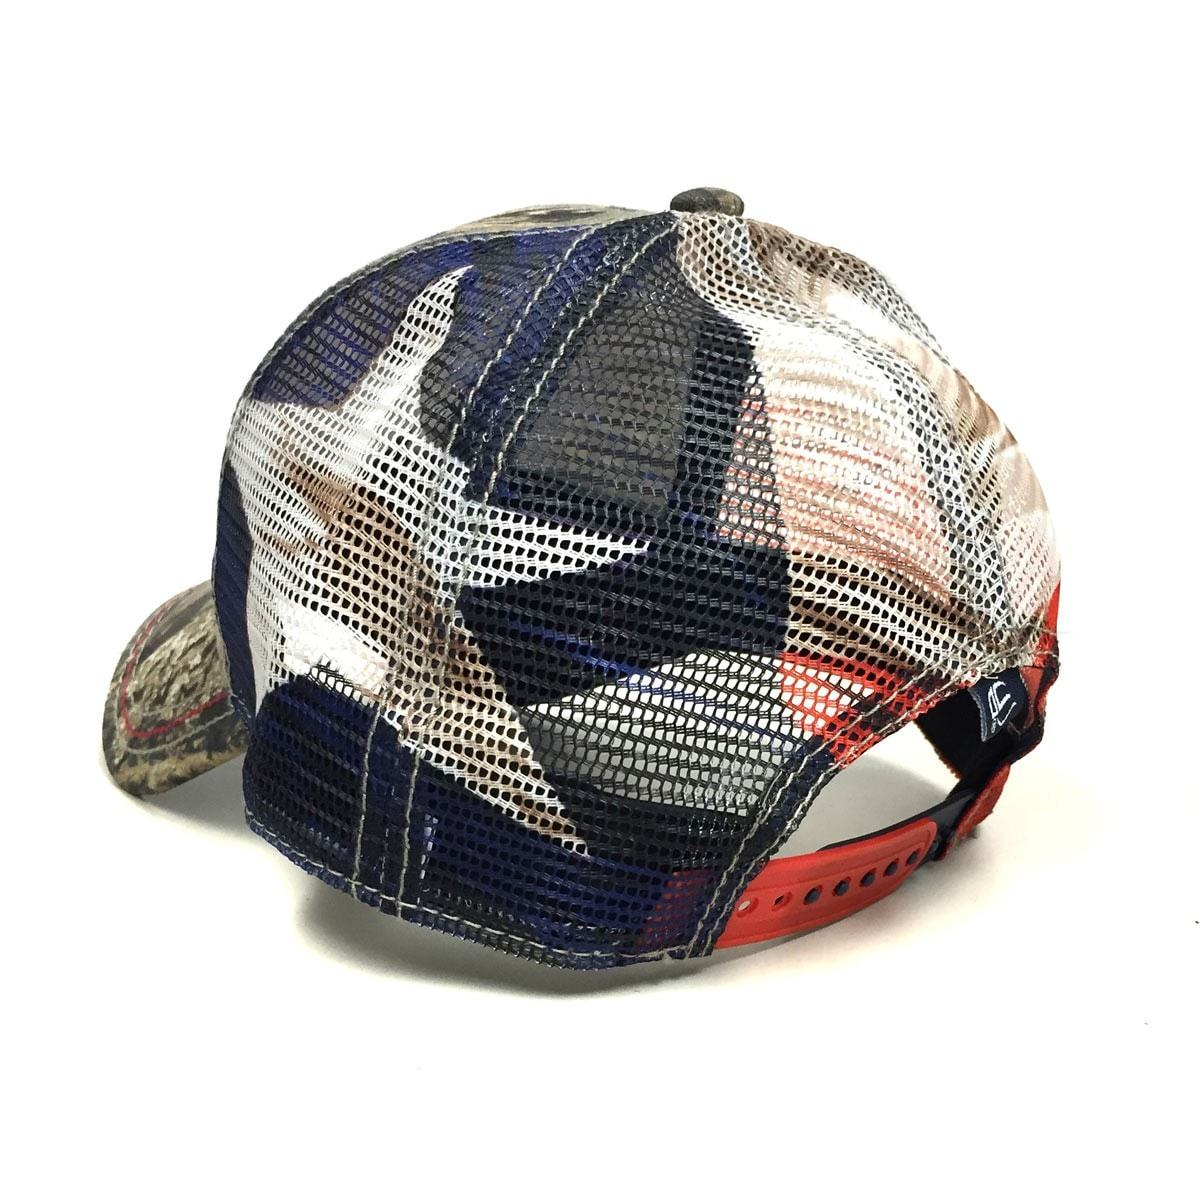 Mossy Oak Texas Flag Trucker Hat - Texas Humor Store - 3 ab2c7f869de